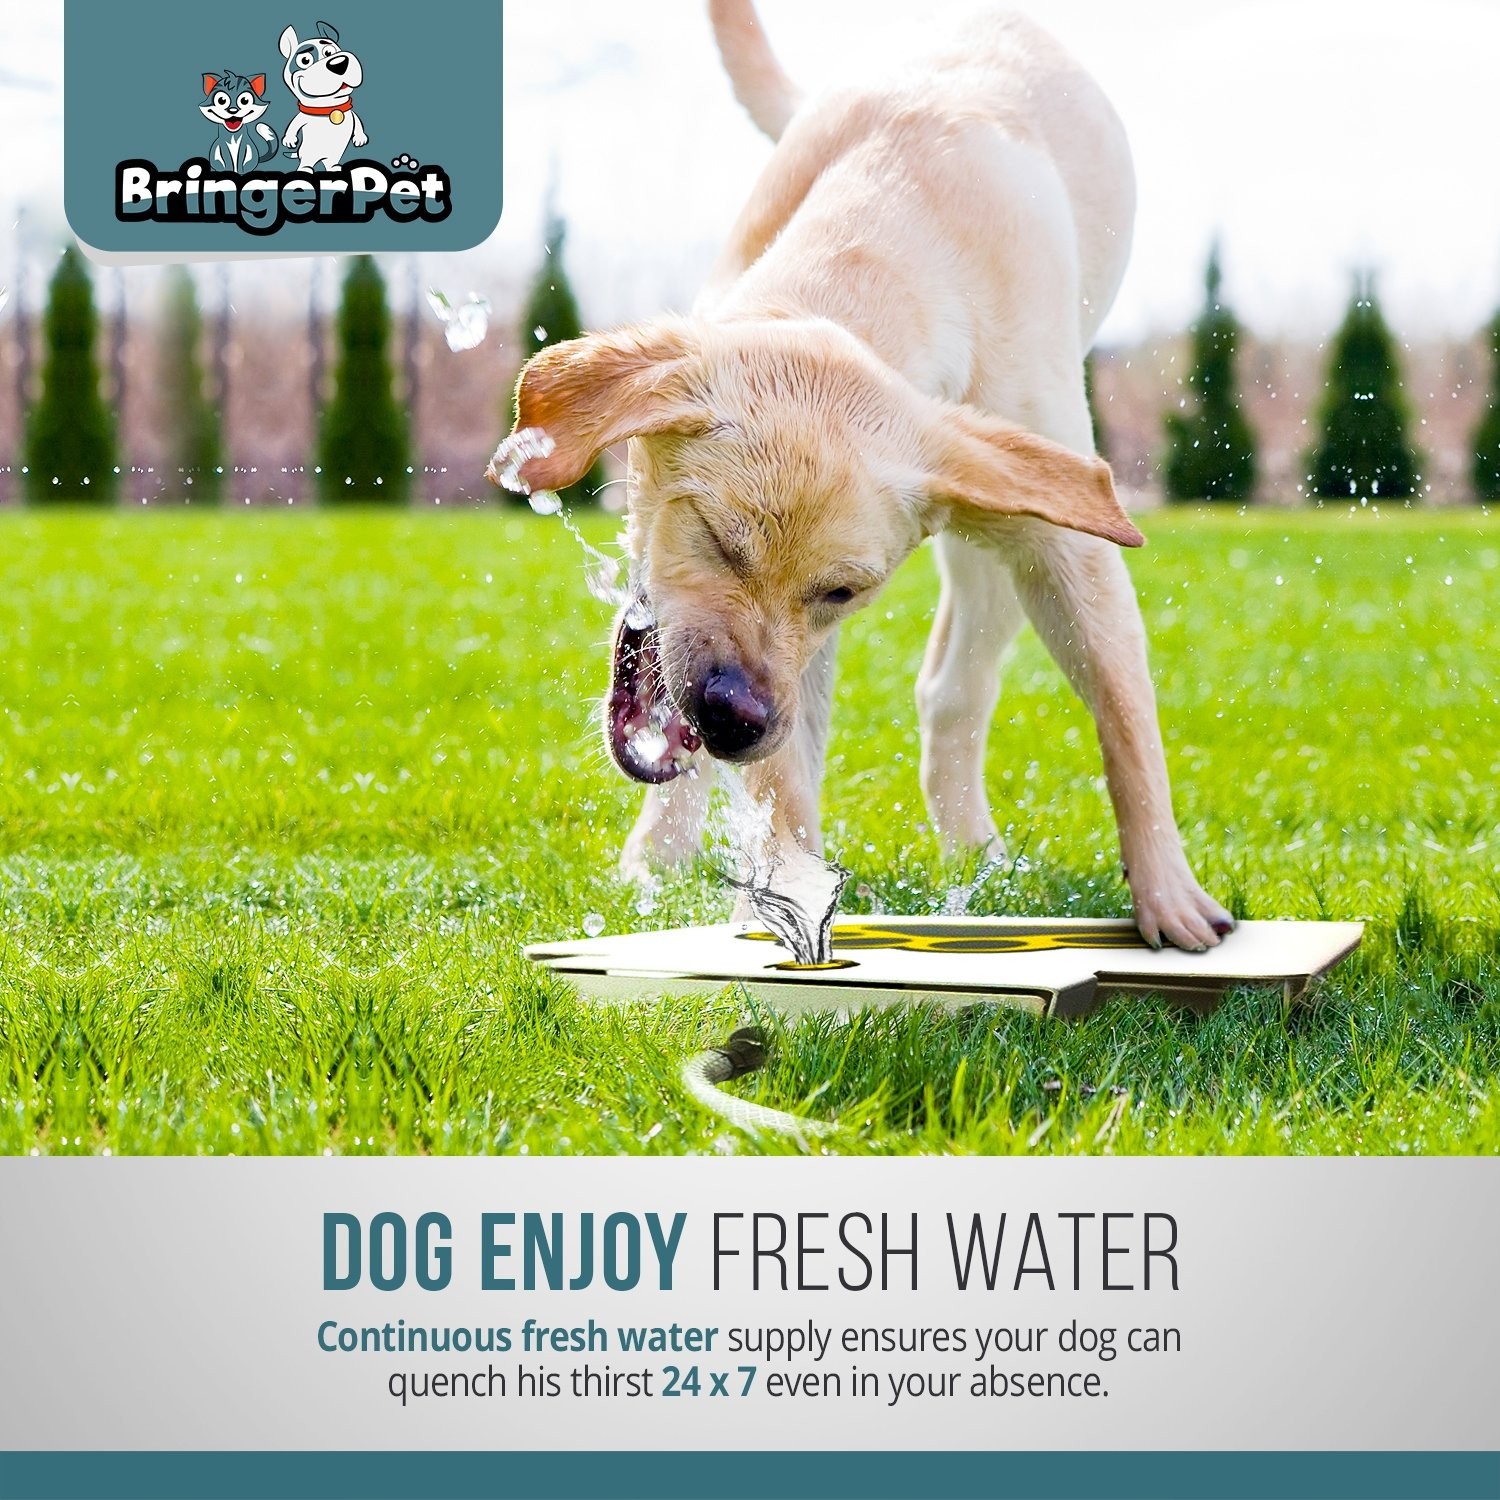 BringerPet Dog Drinking Water Fountain Step On – Outdoor Auto Pet Water Dispenser System for Fresh Water – Suitable as Large or Small Dog Water Fountain Feeder Automatic – Easy to Use Sturdy Build